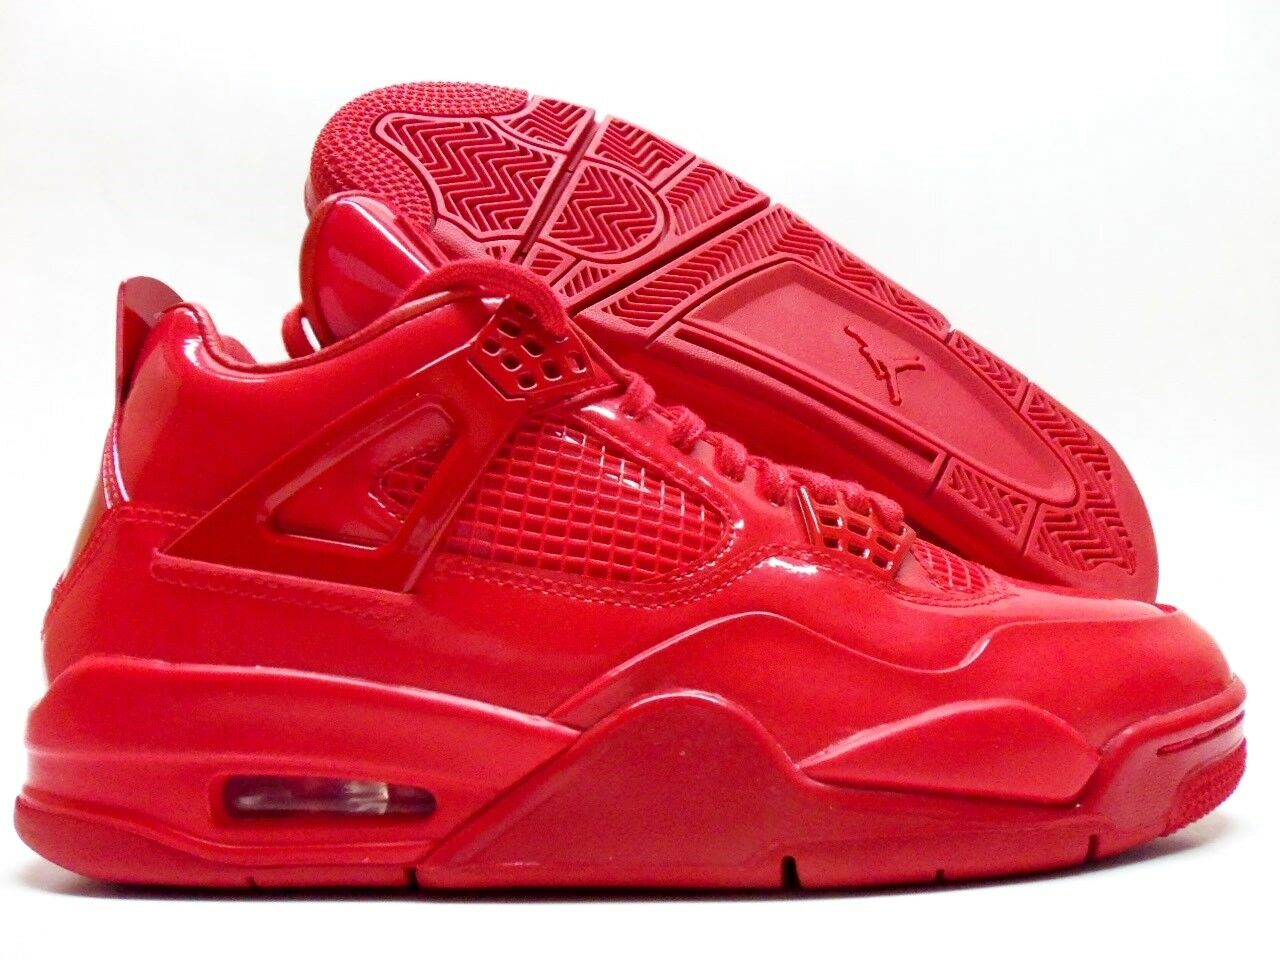 NIKE JORDAN 11LAB4 IV PATENT PATENT PATENT UNIVERSITY RED WHITE SIZE MEN'S 11 [719864-600] a7aedc